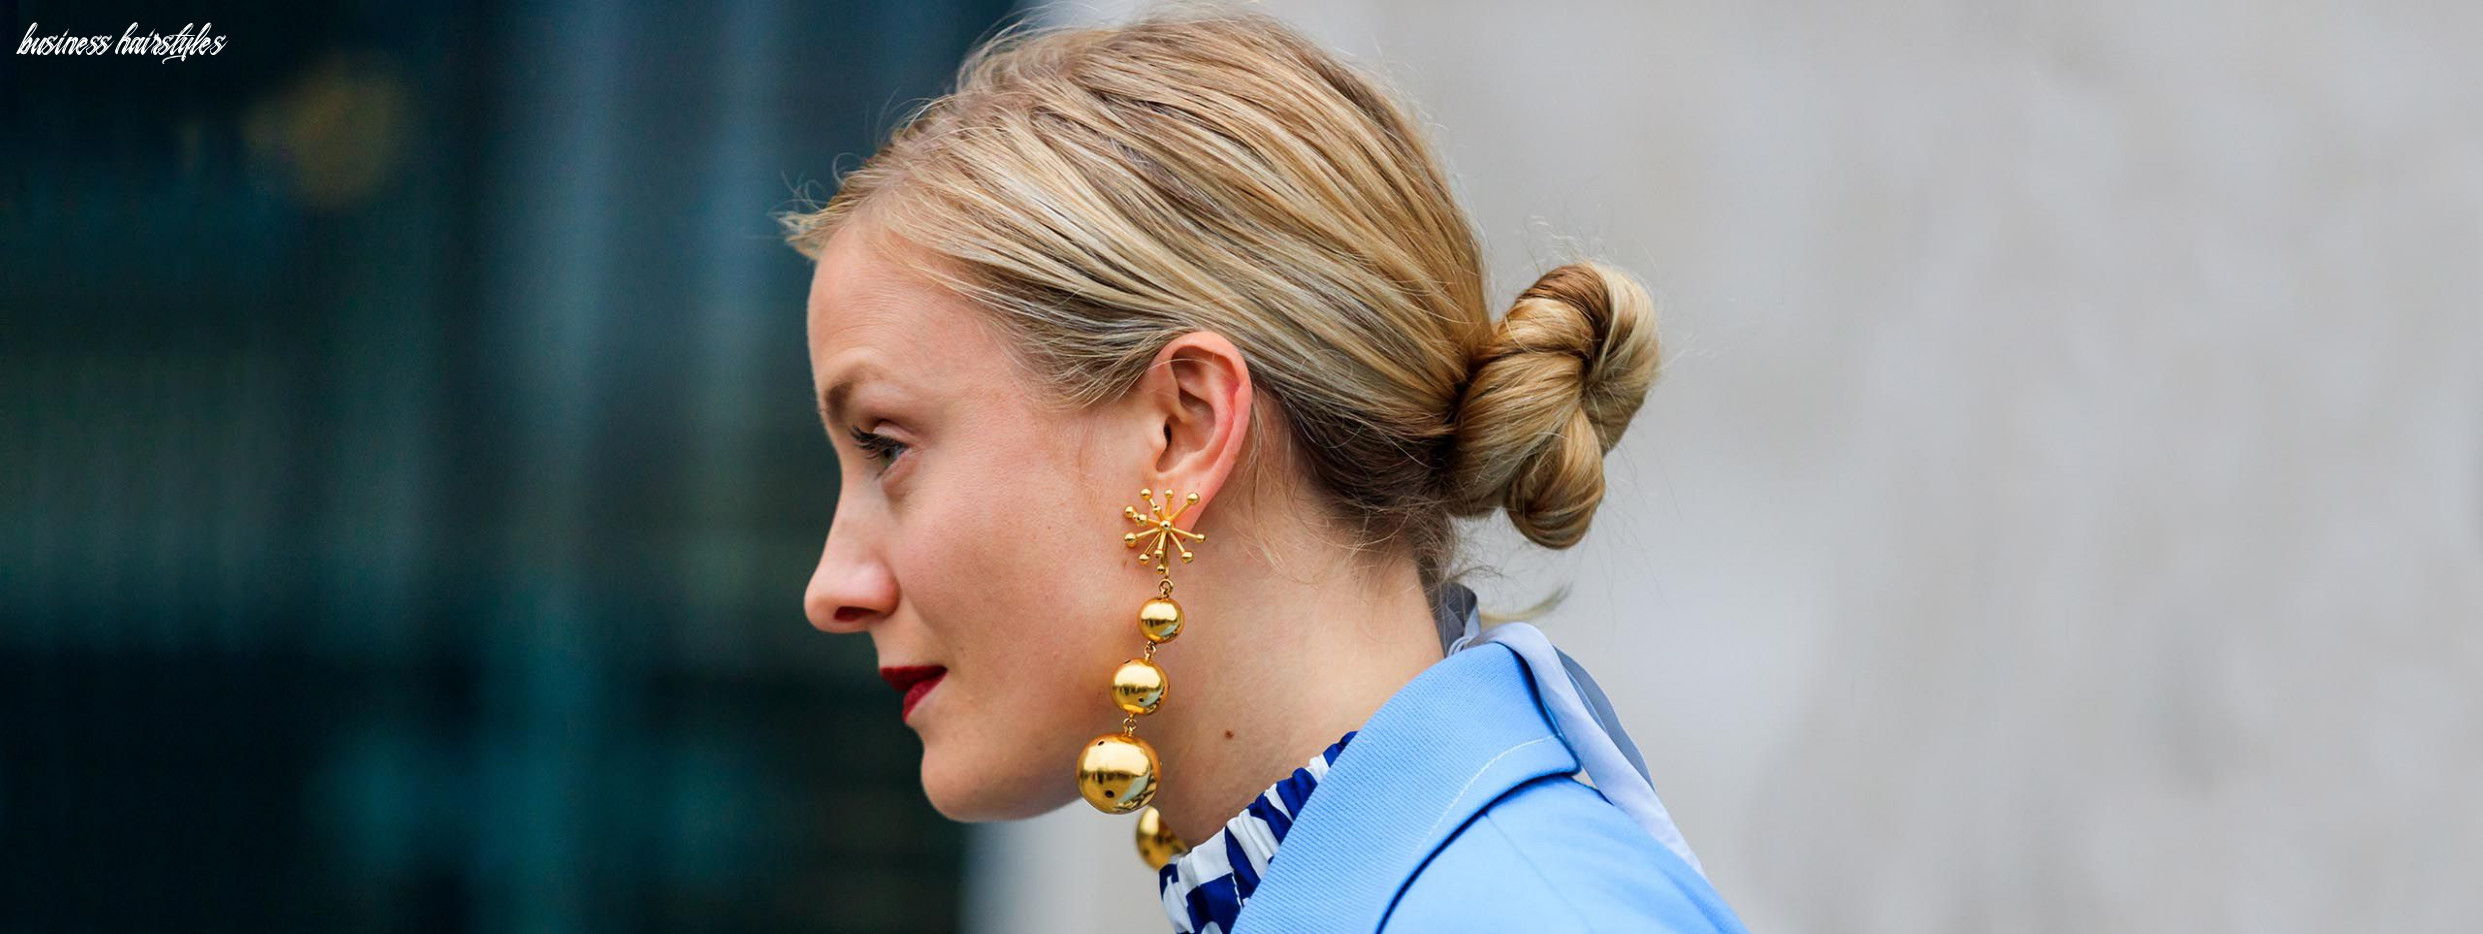 Business hairstyles: score points at work business hairstyles